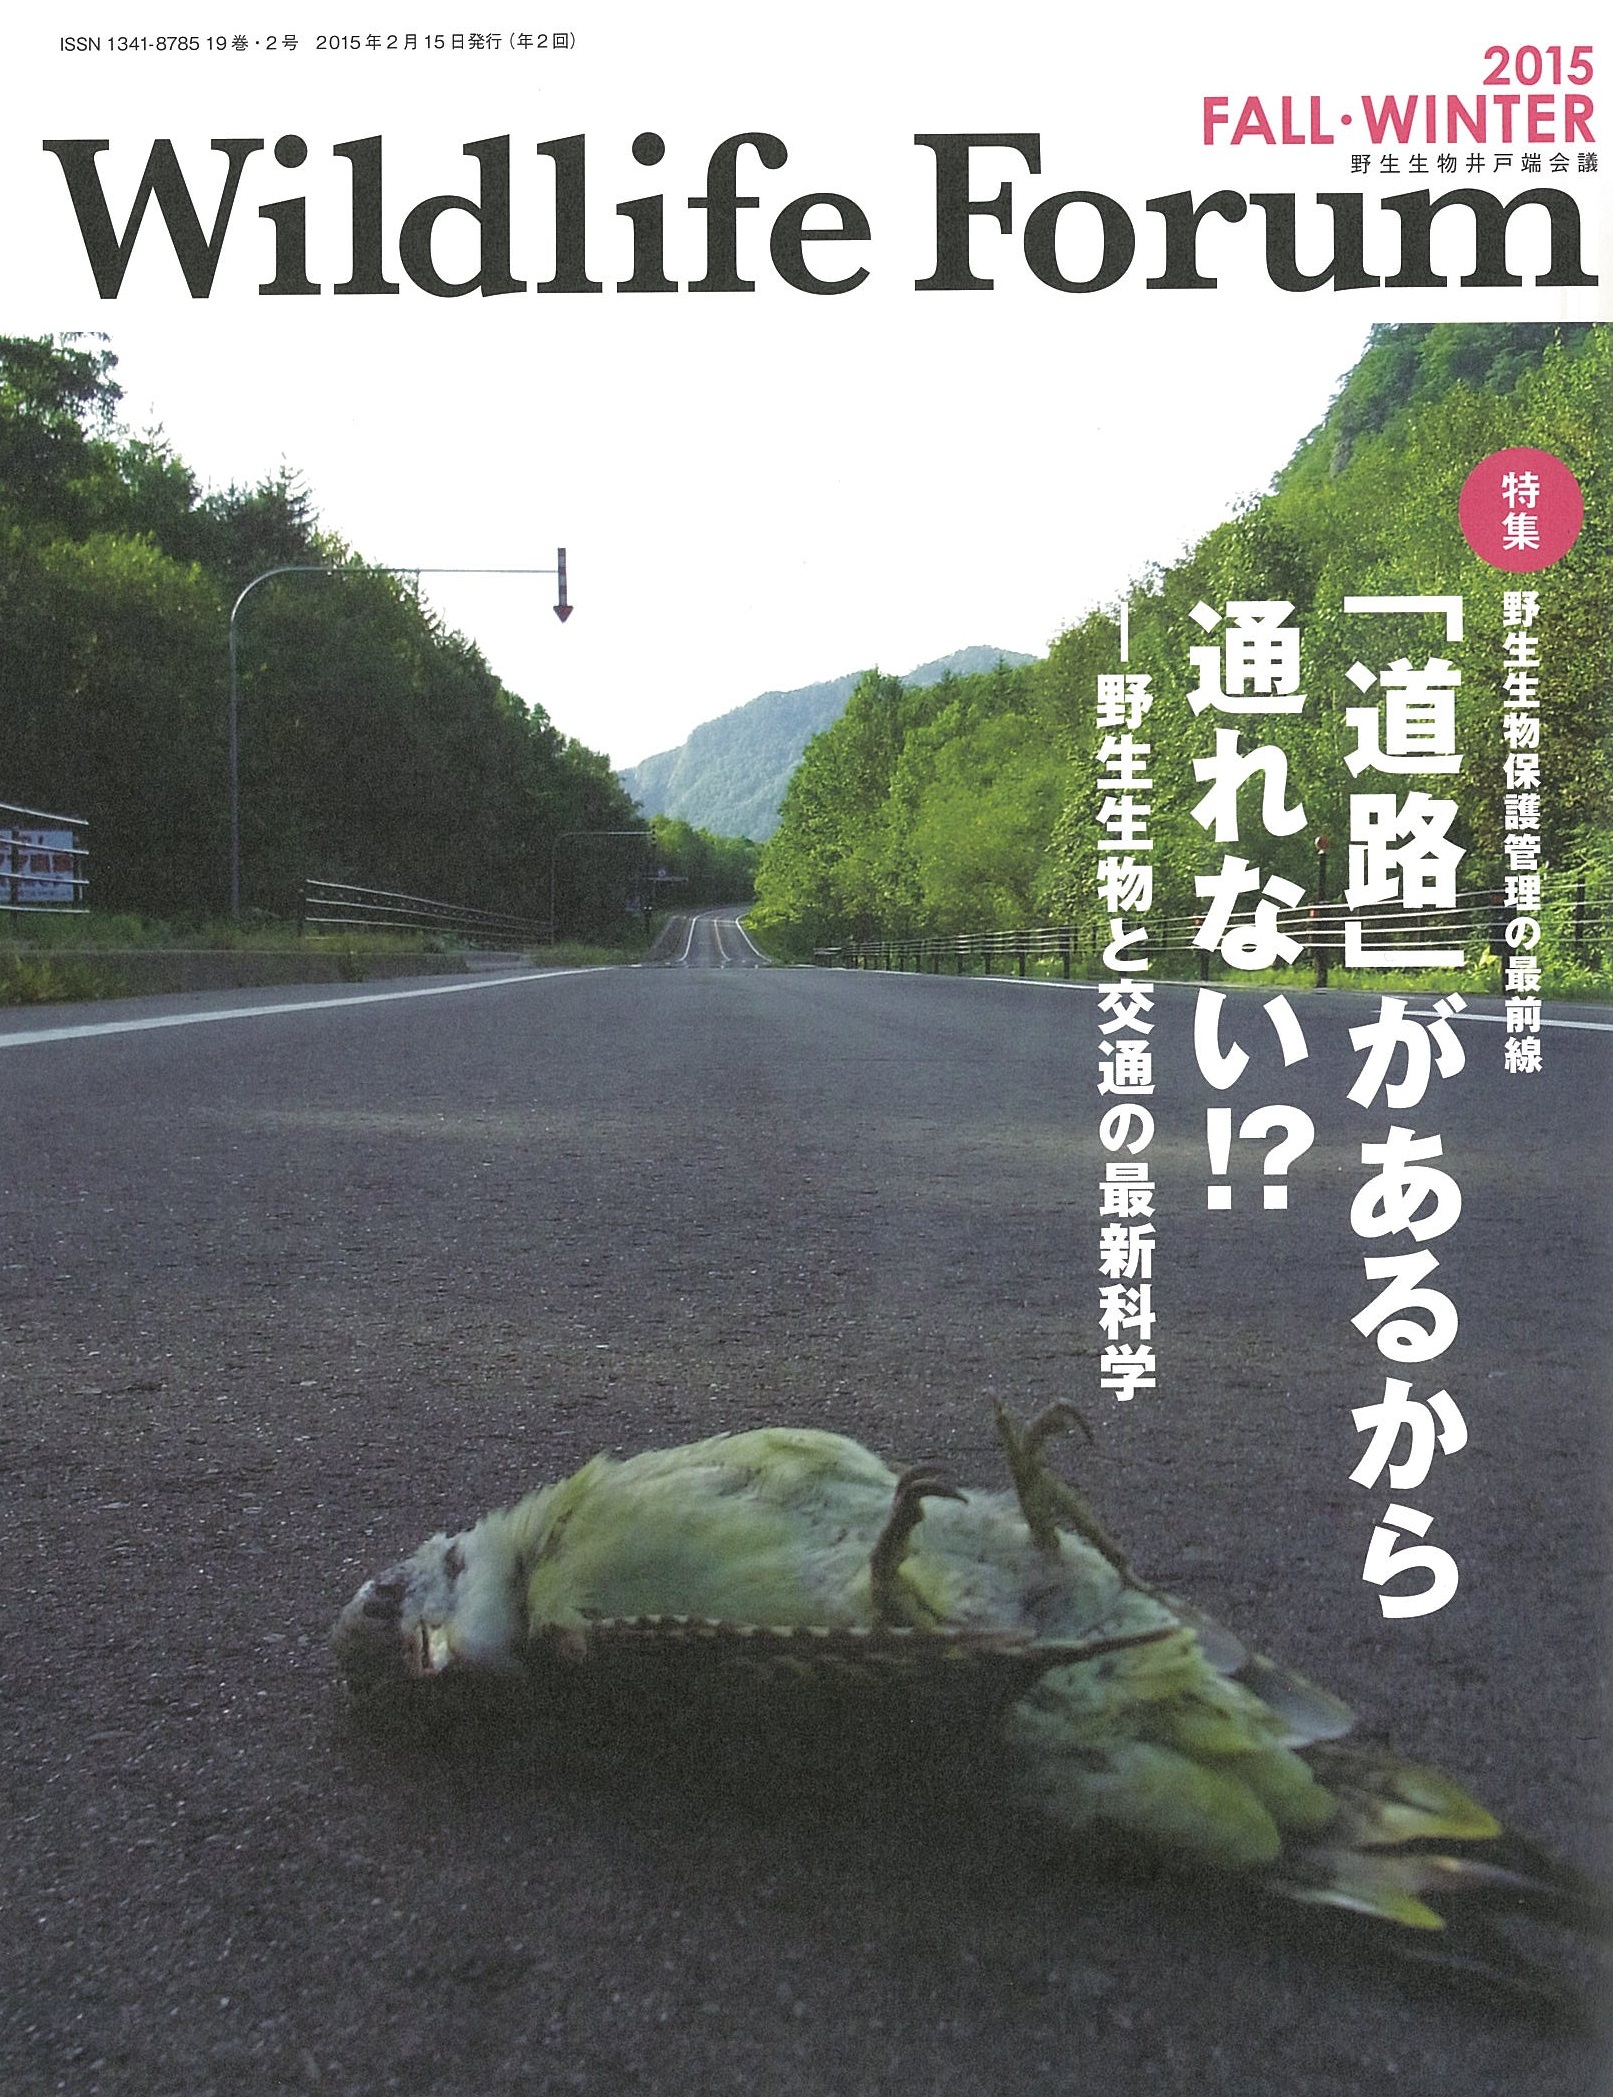 Wildlife FORUM Vol.19 No.2